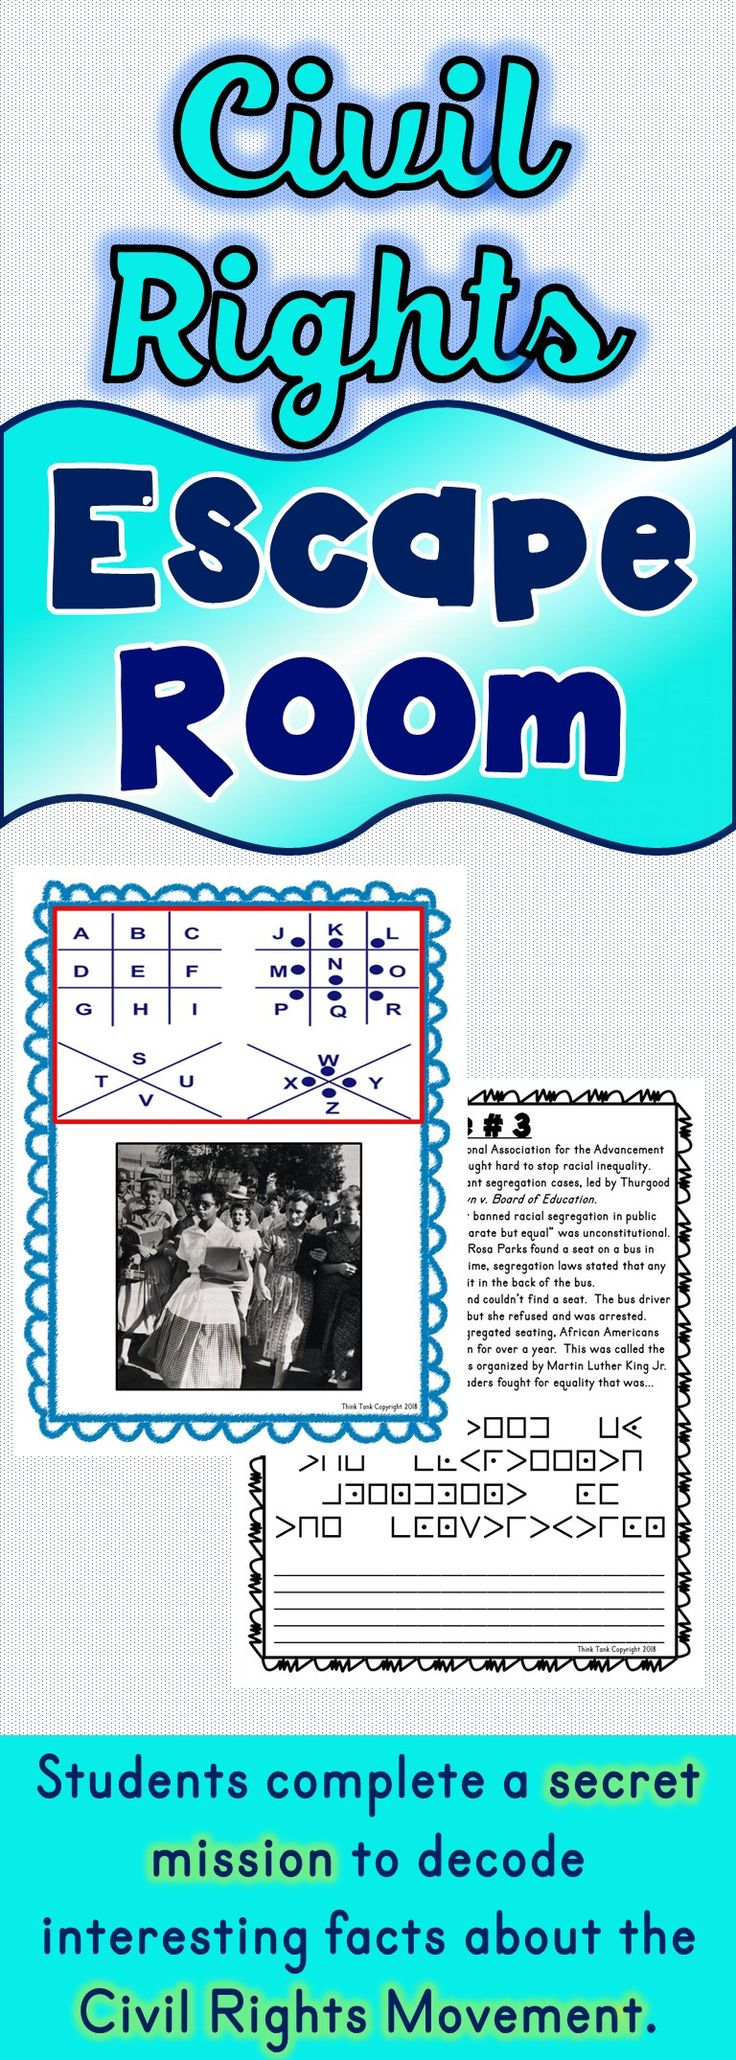 The Civil Rights Movement Escape Room will take students on a secret mission around the classroom! This escape room has students decode interesting facts about the Civil Rights Movement. This is the perfect resource to introduce the Civil Rights Movement, the Montgomery Bus Boycott, Rosa Parks, Martin Luther King Jr., Little Rock Nine or Black History Month. #blackhistory #blackhistorymonth #escape